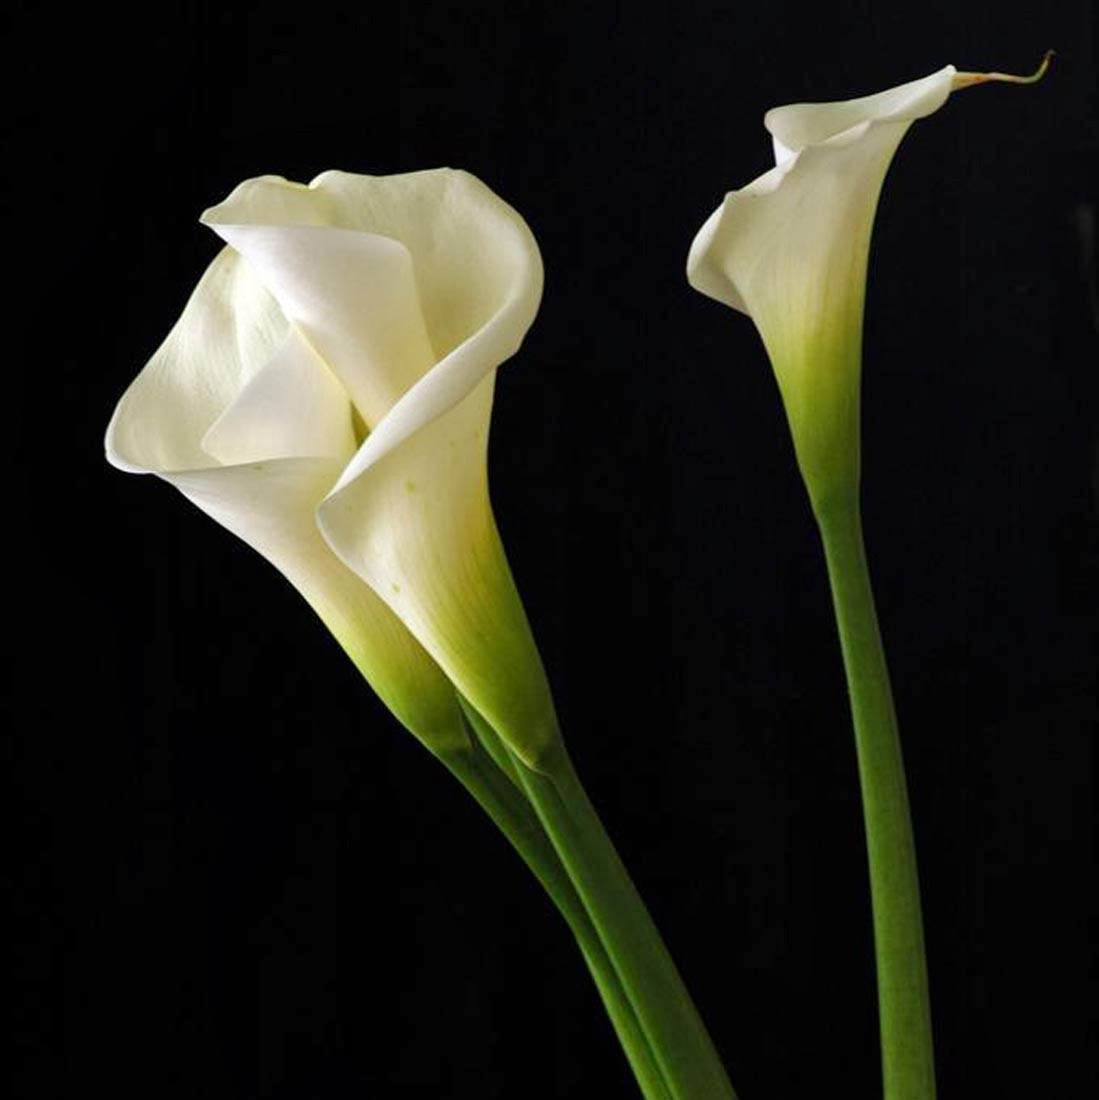 Lets Enjoy The Beauty Calla Lily Flower One Of The Worlds Most